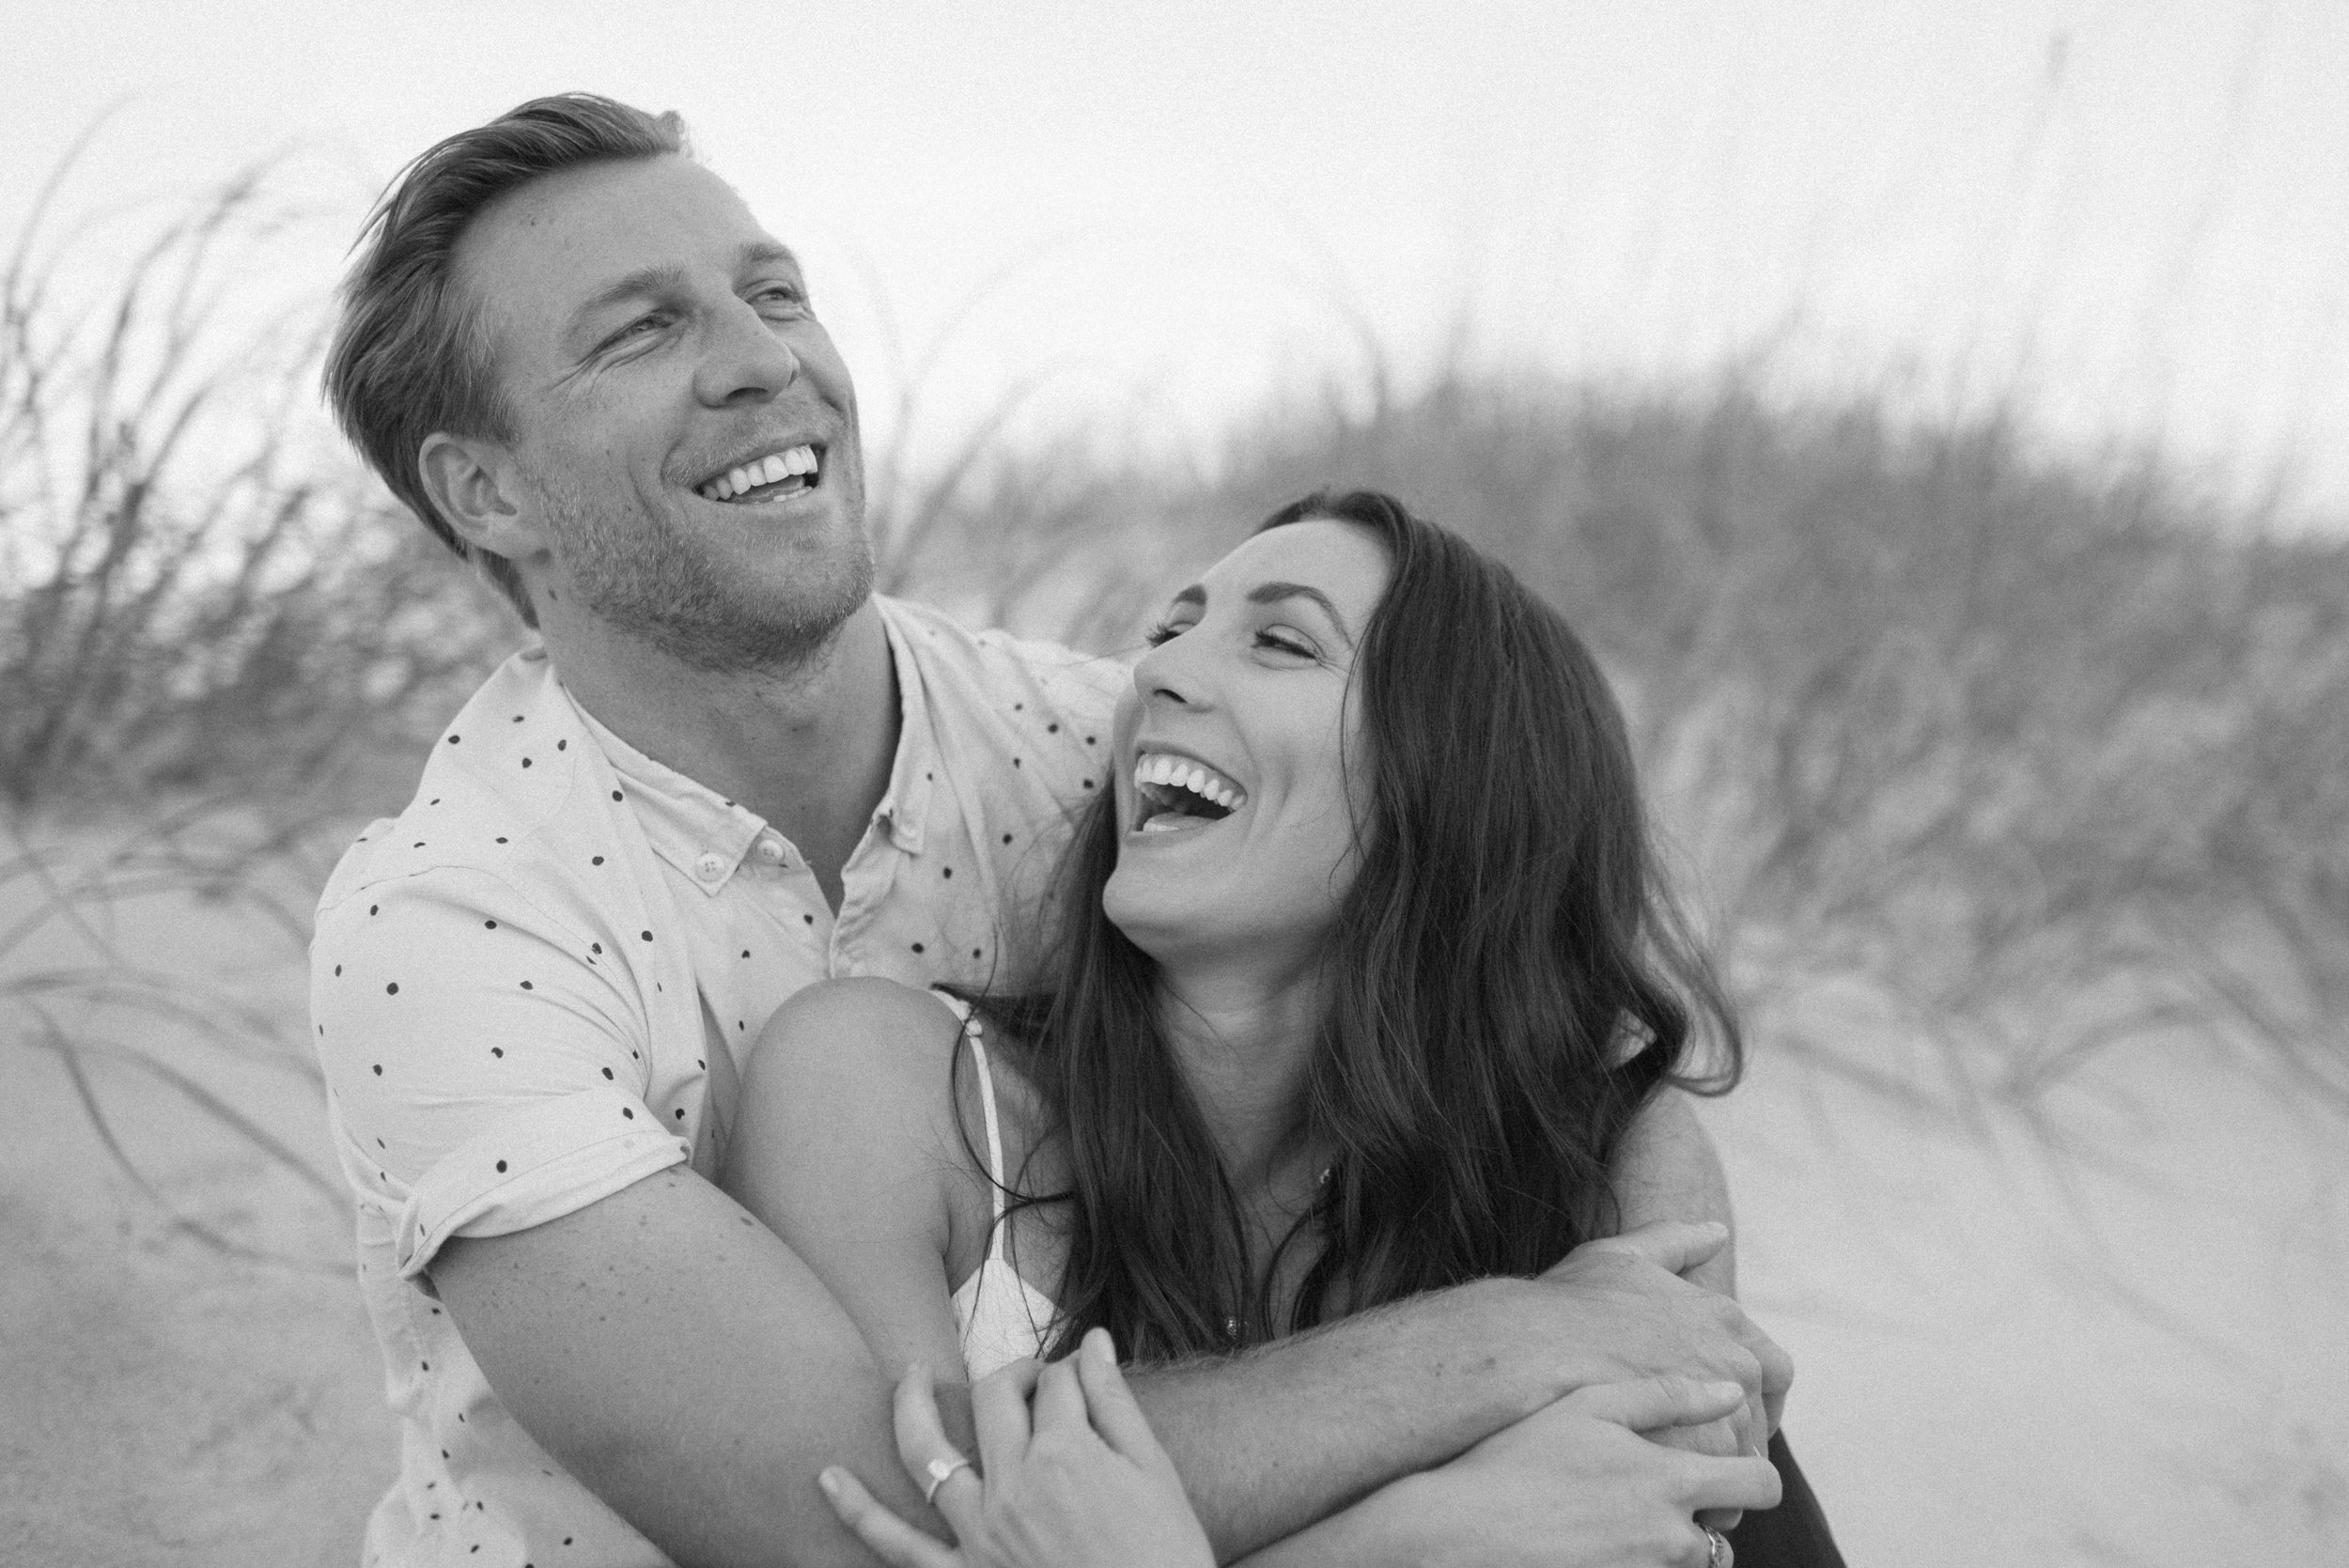 atlantic-beach-engagement-photos-heather-and-cody-77.jpg